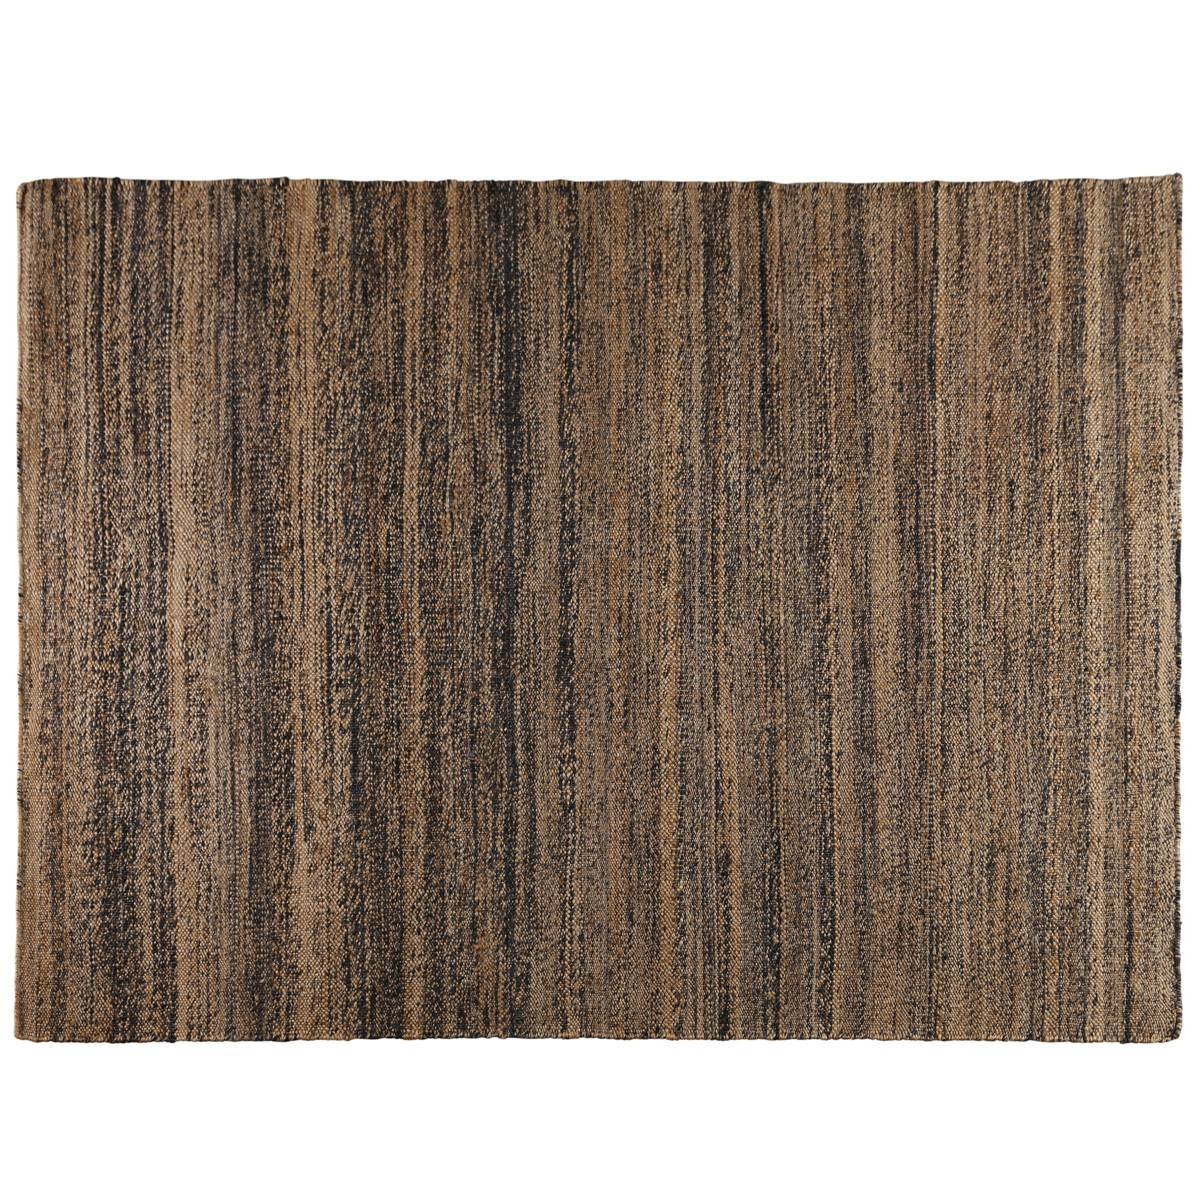 "Zago ""Tapis en chanvre naturel 120 x 170 cm Stripes - ZAGO"""